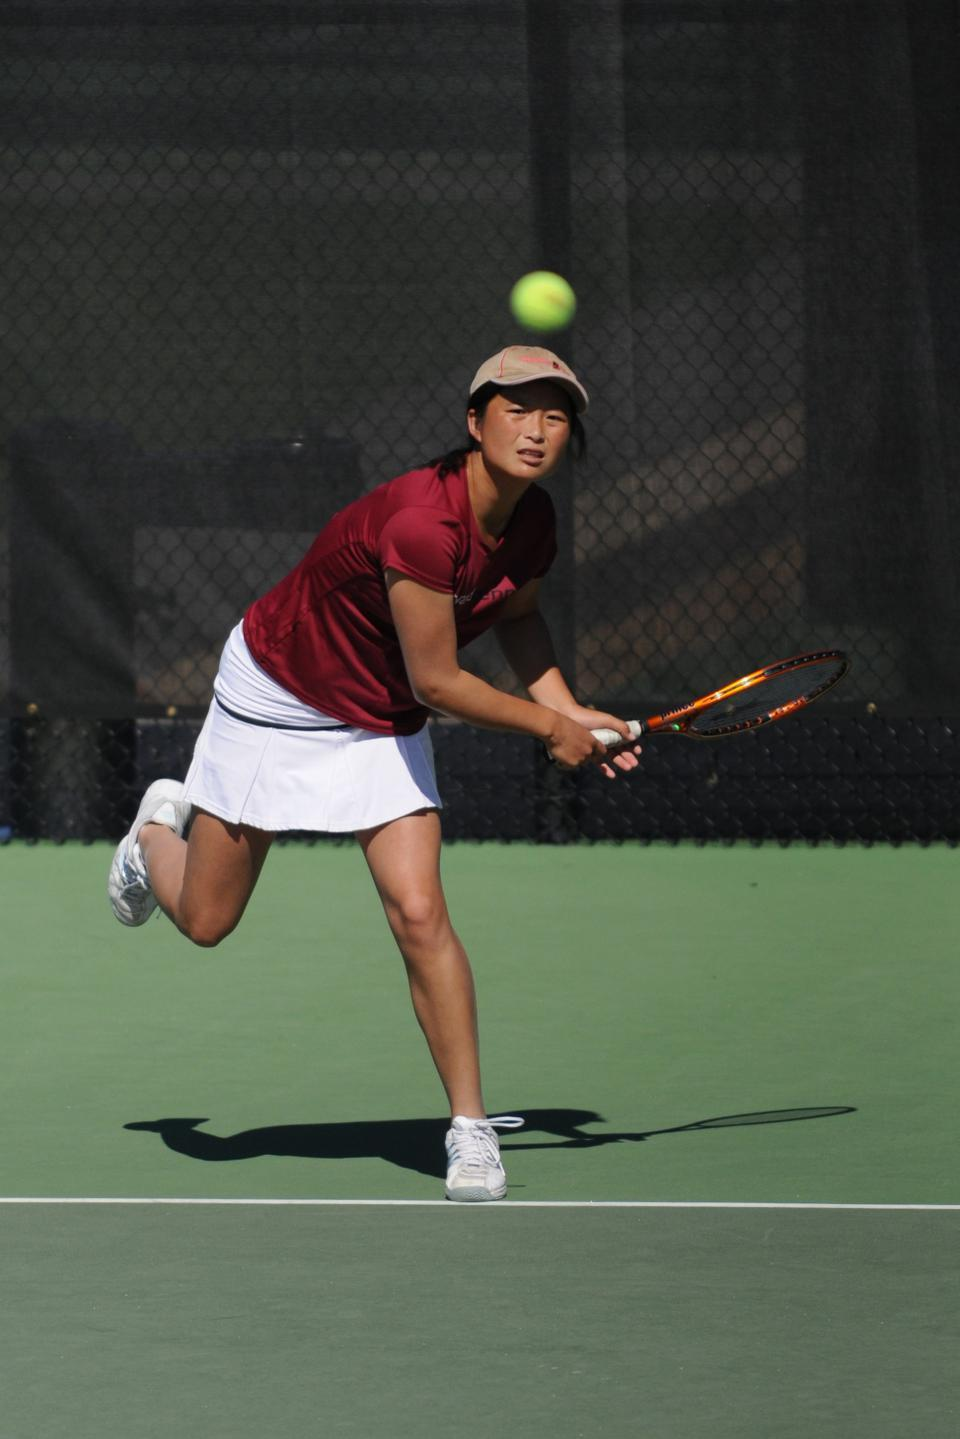 Though Harvard had already clinched the overall outcome, junior co-captain Holly Cao pulled out a three-set match against Boston College Saturday. The veteran, ranked No. 45 in the nation, had fallen at the No. 1 doubles spot to the Eagles' pair of Alex Kelleher and Olga Khmylev.